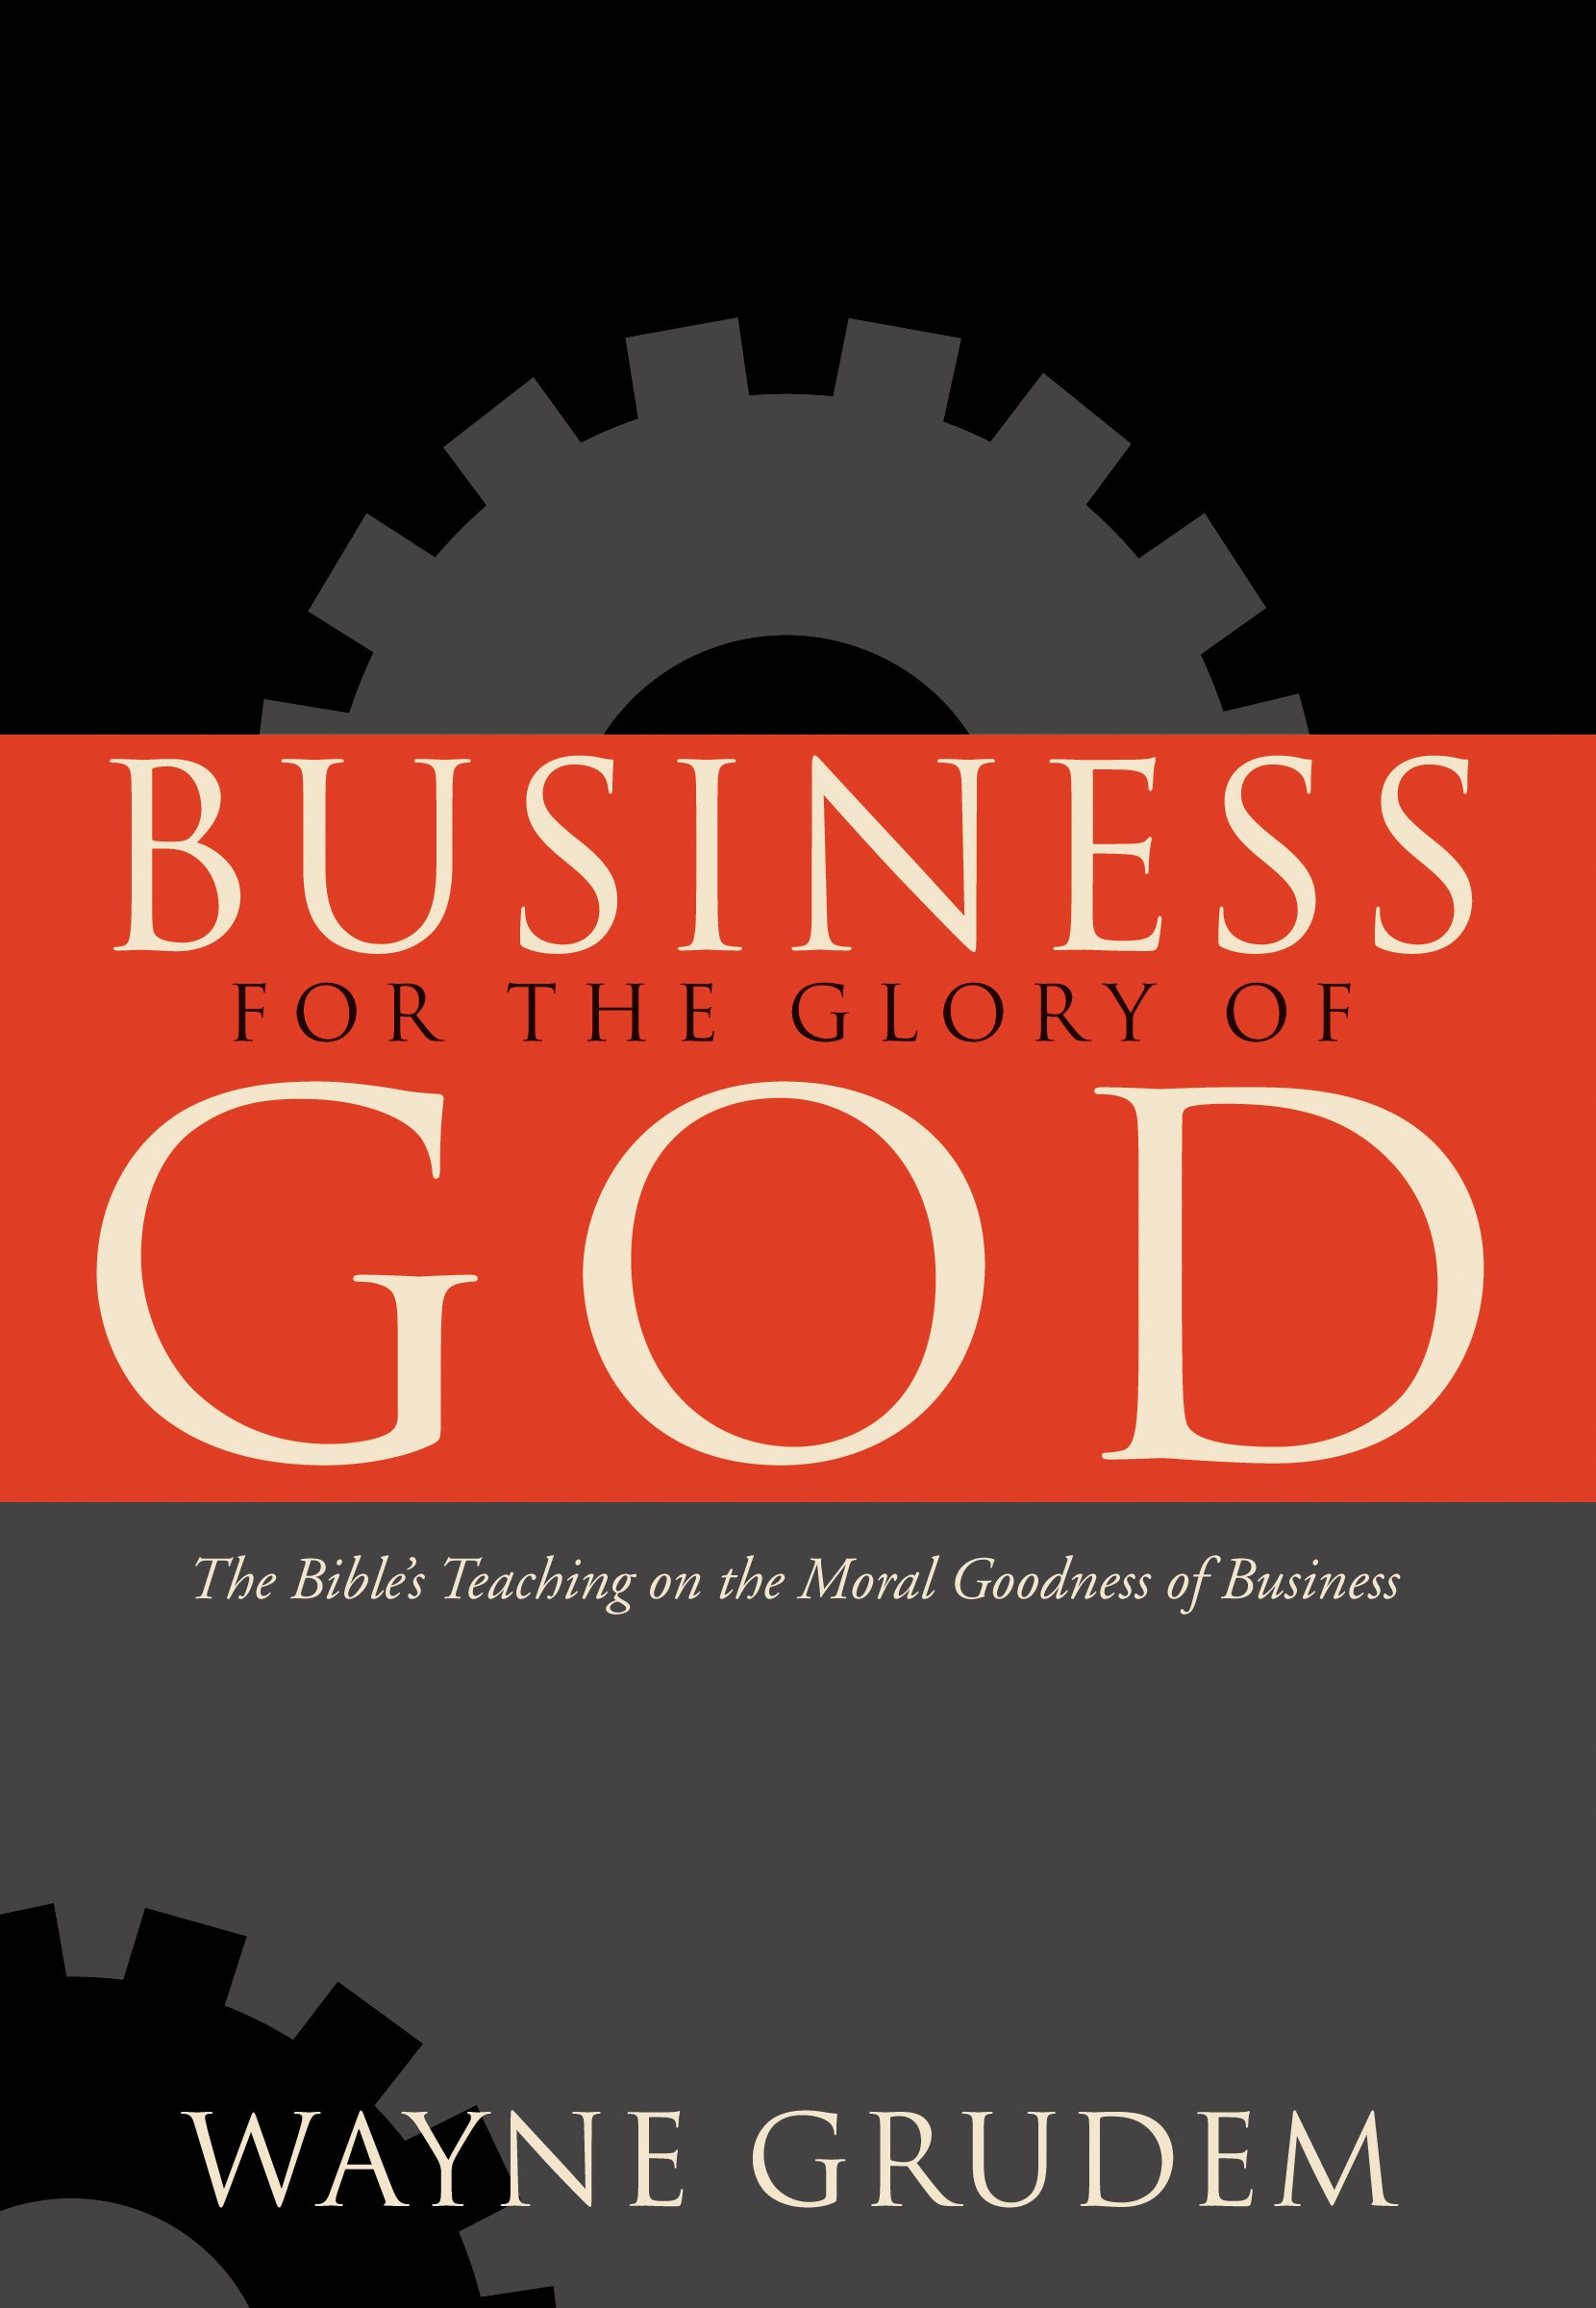 business for the glory of God cover.jpg